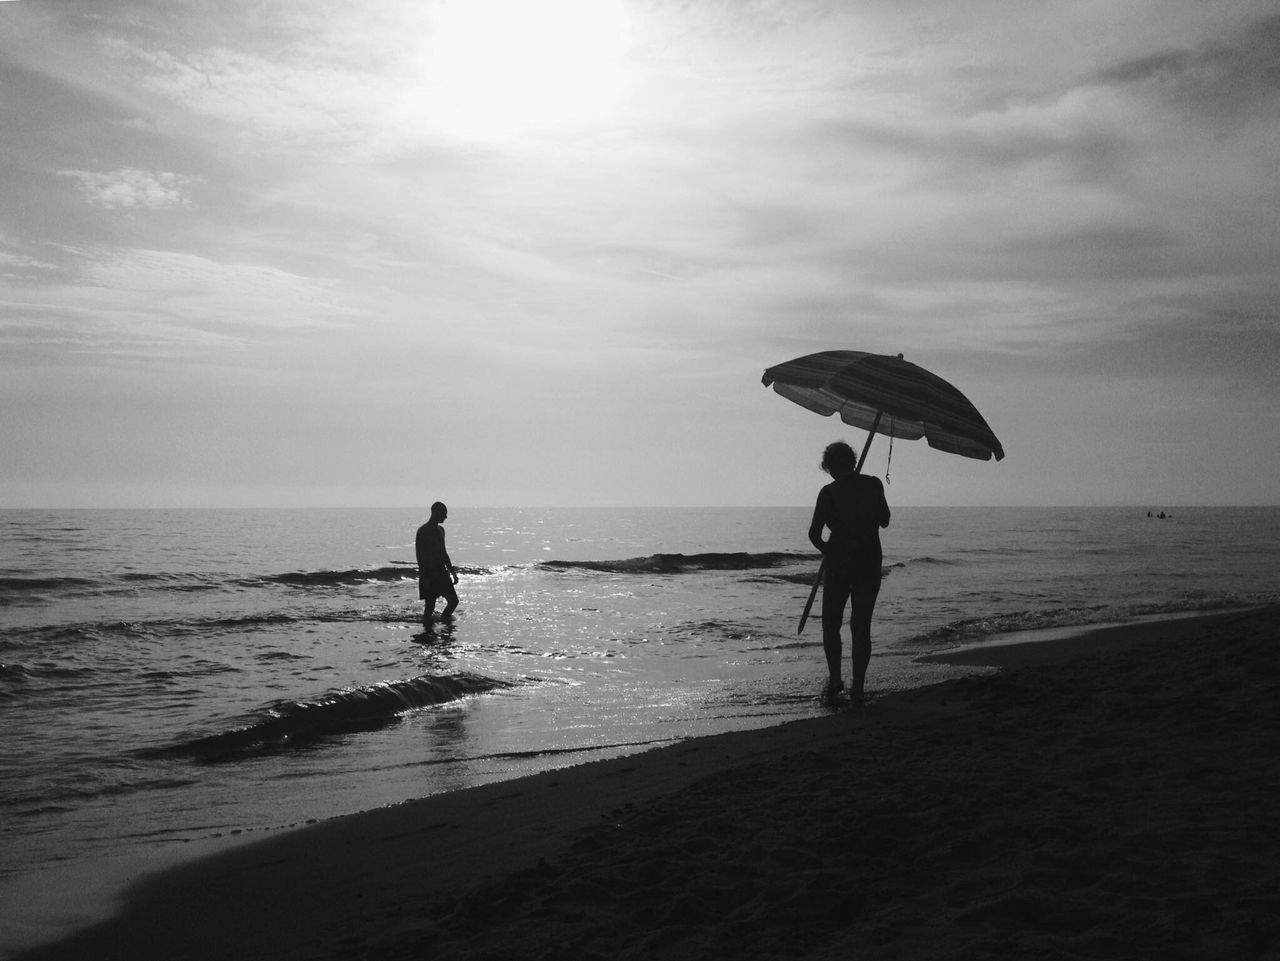 Monochrome Photography EyeEm Great Atmosphere EyeEm Best Edits Blackandwhite Bw_collection Streetphoto_bw Bws_worldwide EyeEm Bnw Streetphotography Street Street Photography B&w Street Photography Sea Beach Tranquil Scene Italy